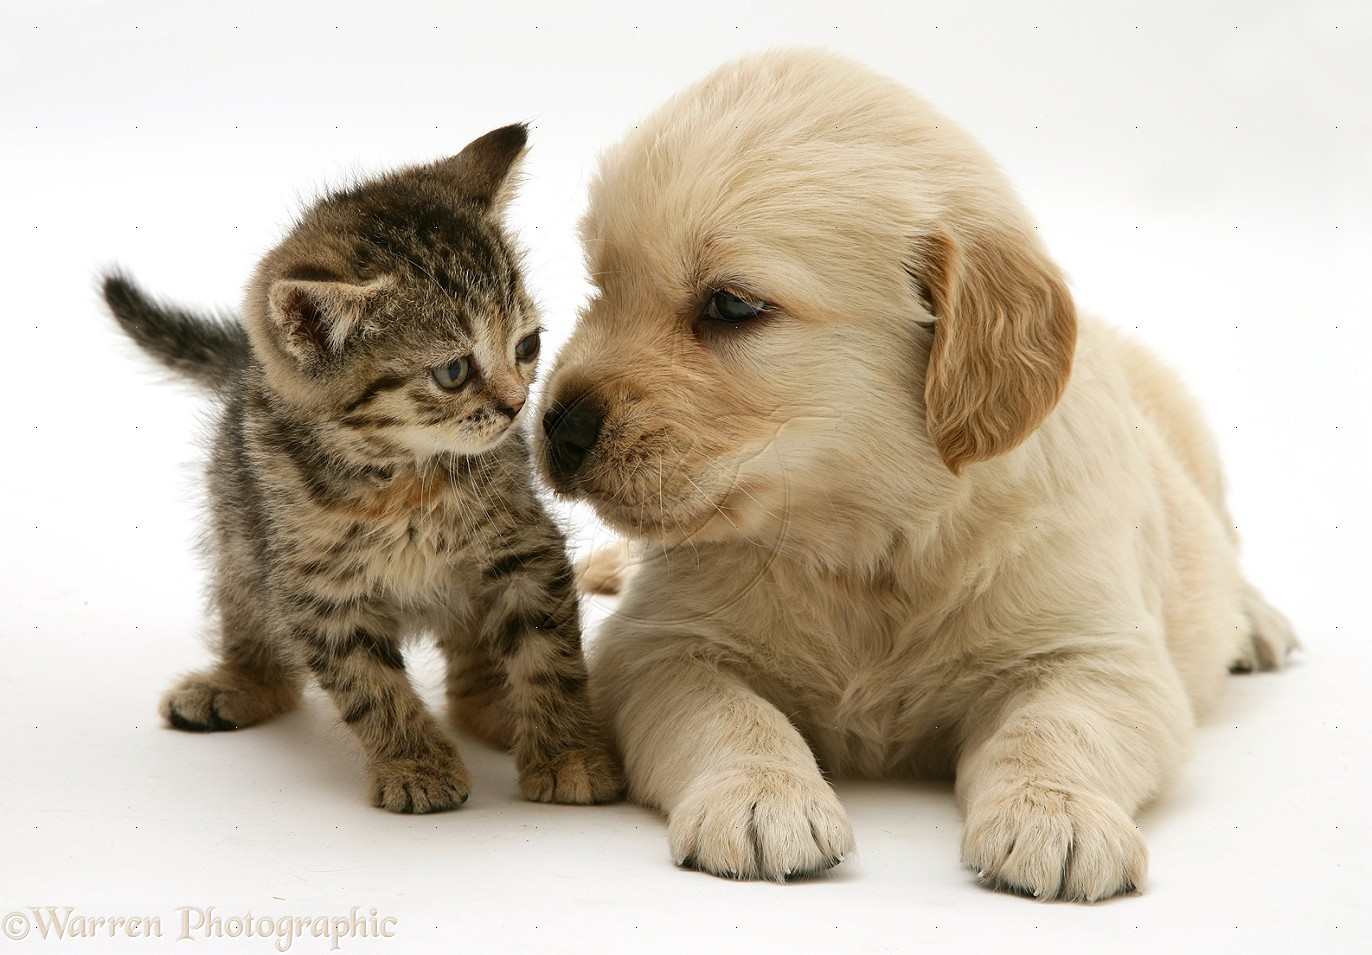 image fromhttp://galleryhip.com/pictures-of-kittens-and-puppies-together.html